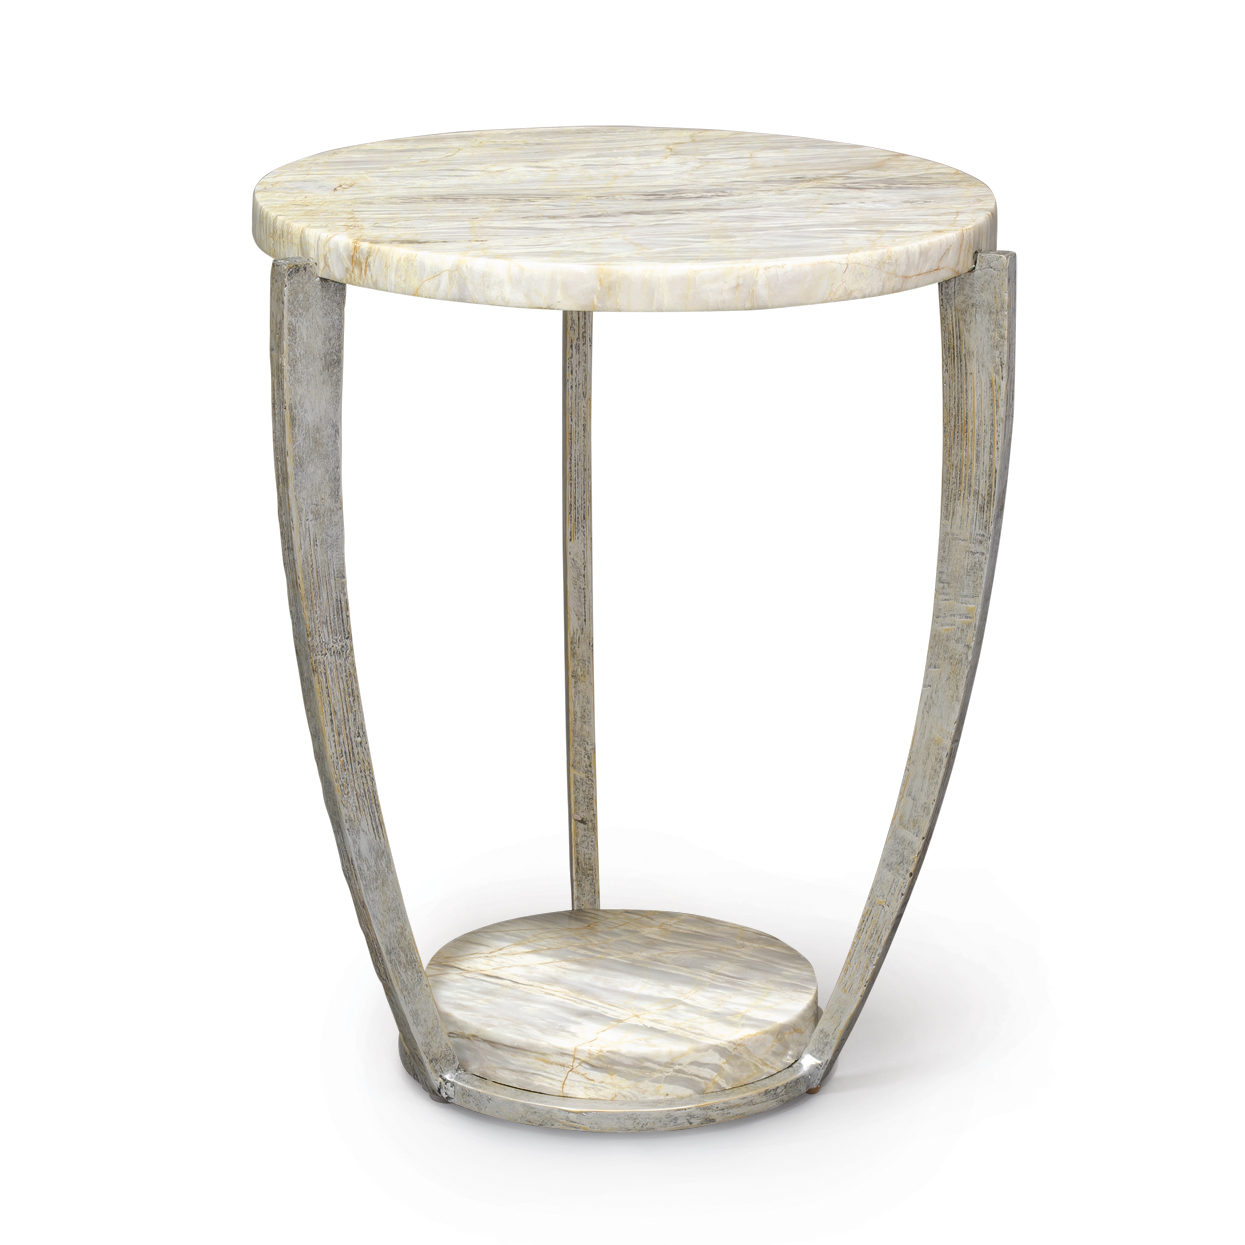 exciting marble accent table set bistro threshold top wood round small antique and faux killian target metal black white nero full size low coffee wicker ott throne with backrest